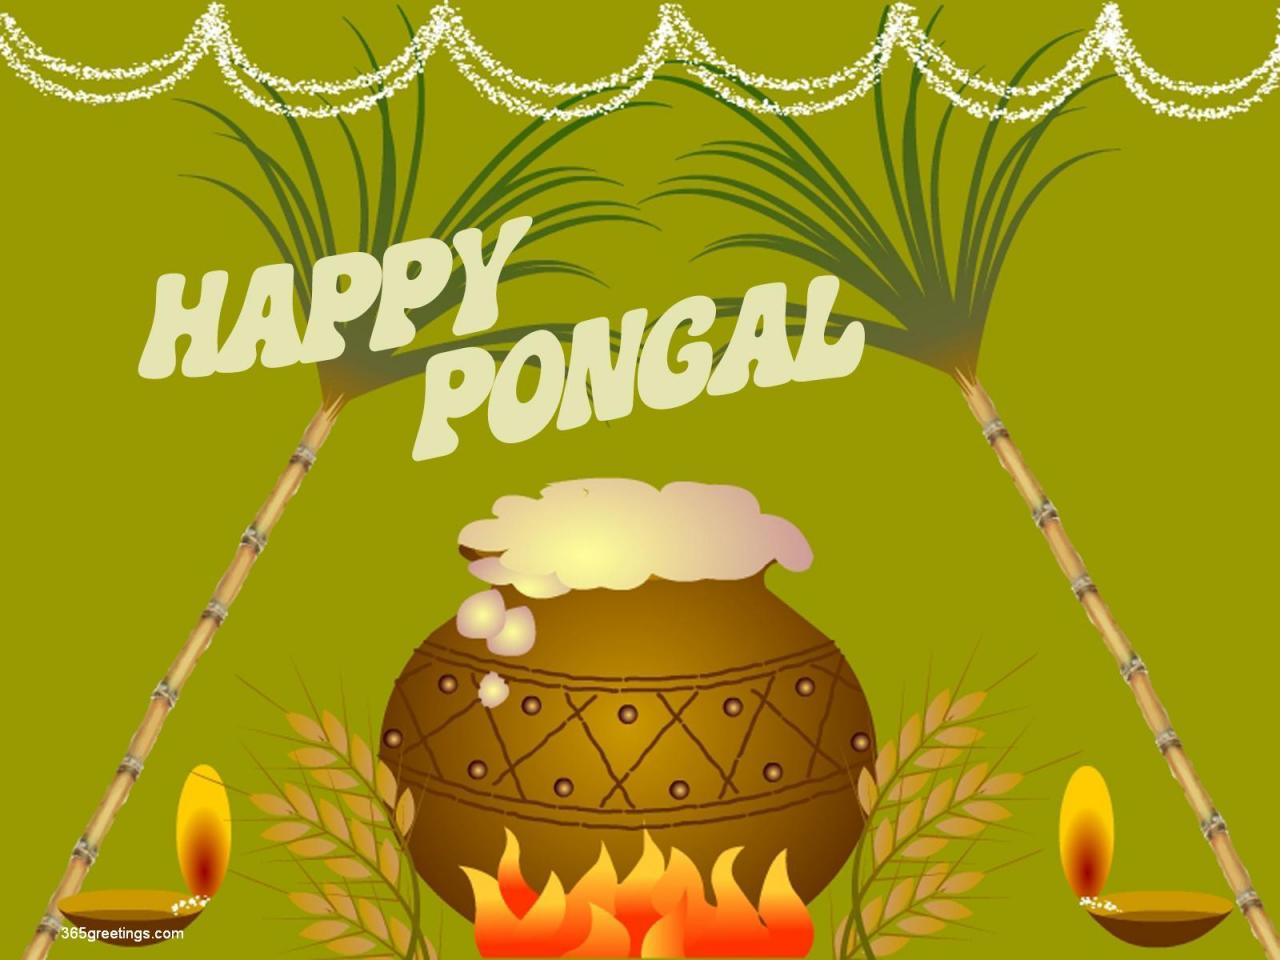 mouth pongal greetings downnload greetings for pongal greetings 2012 downnload greetings for festival e cards greeting cards pongal greetings pongal festival greetings